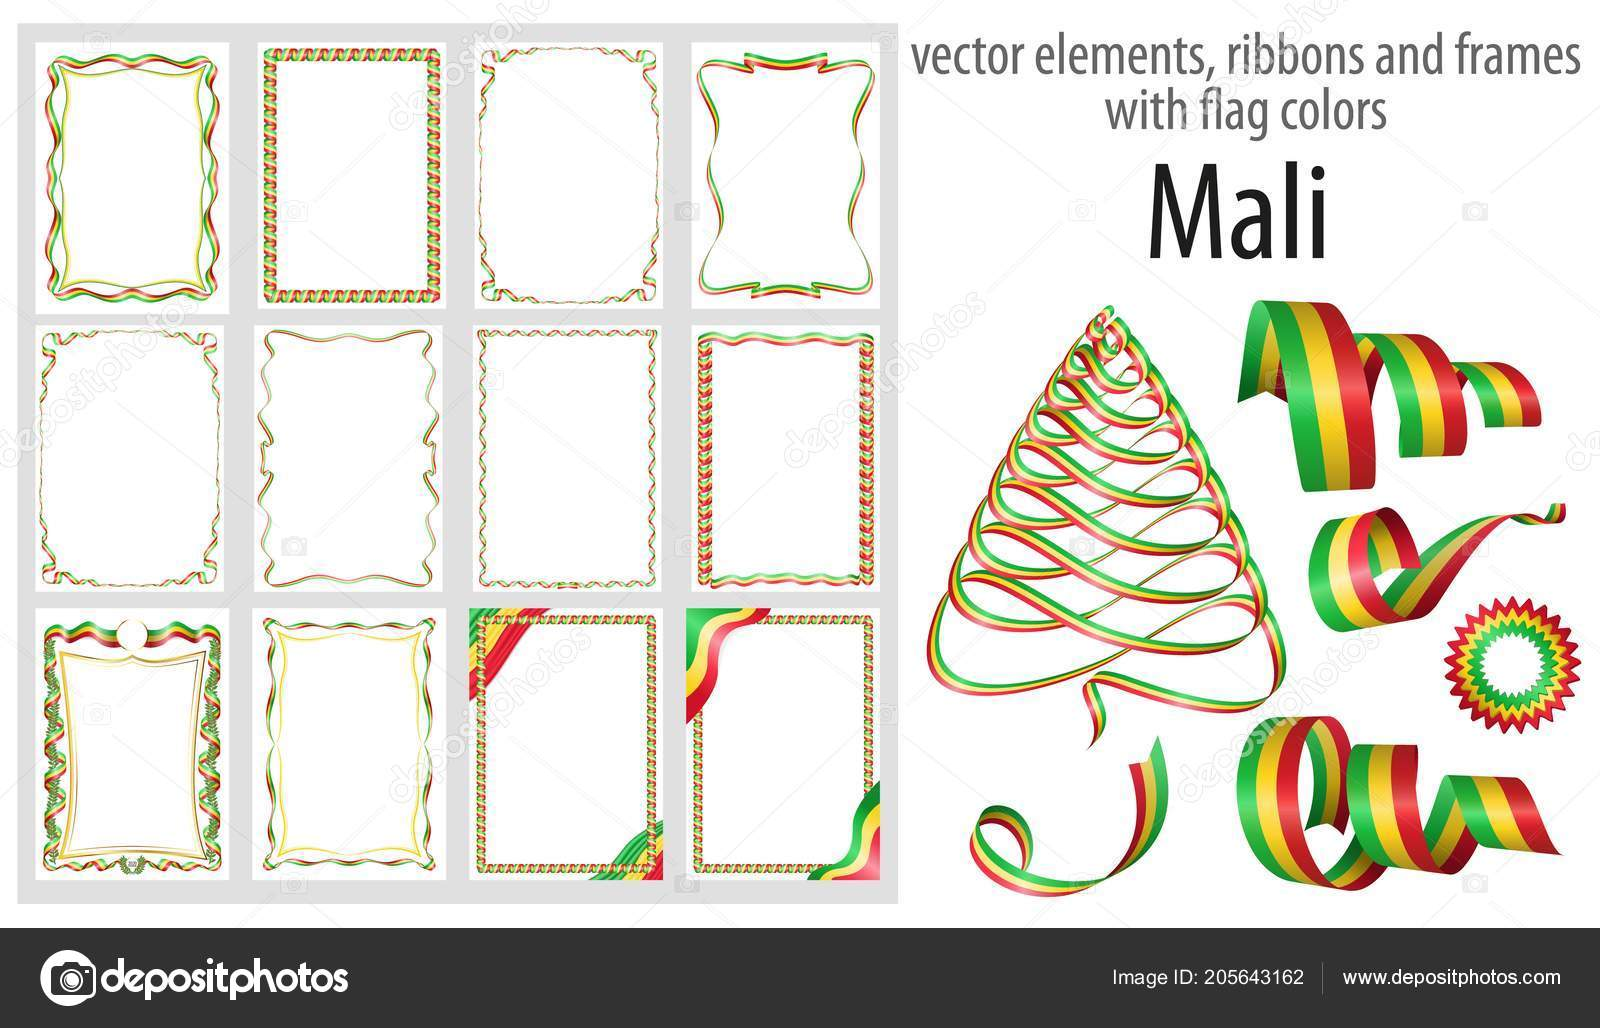 vector elements ribbons frames flag colors mali template your